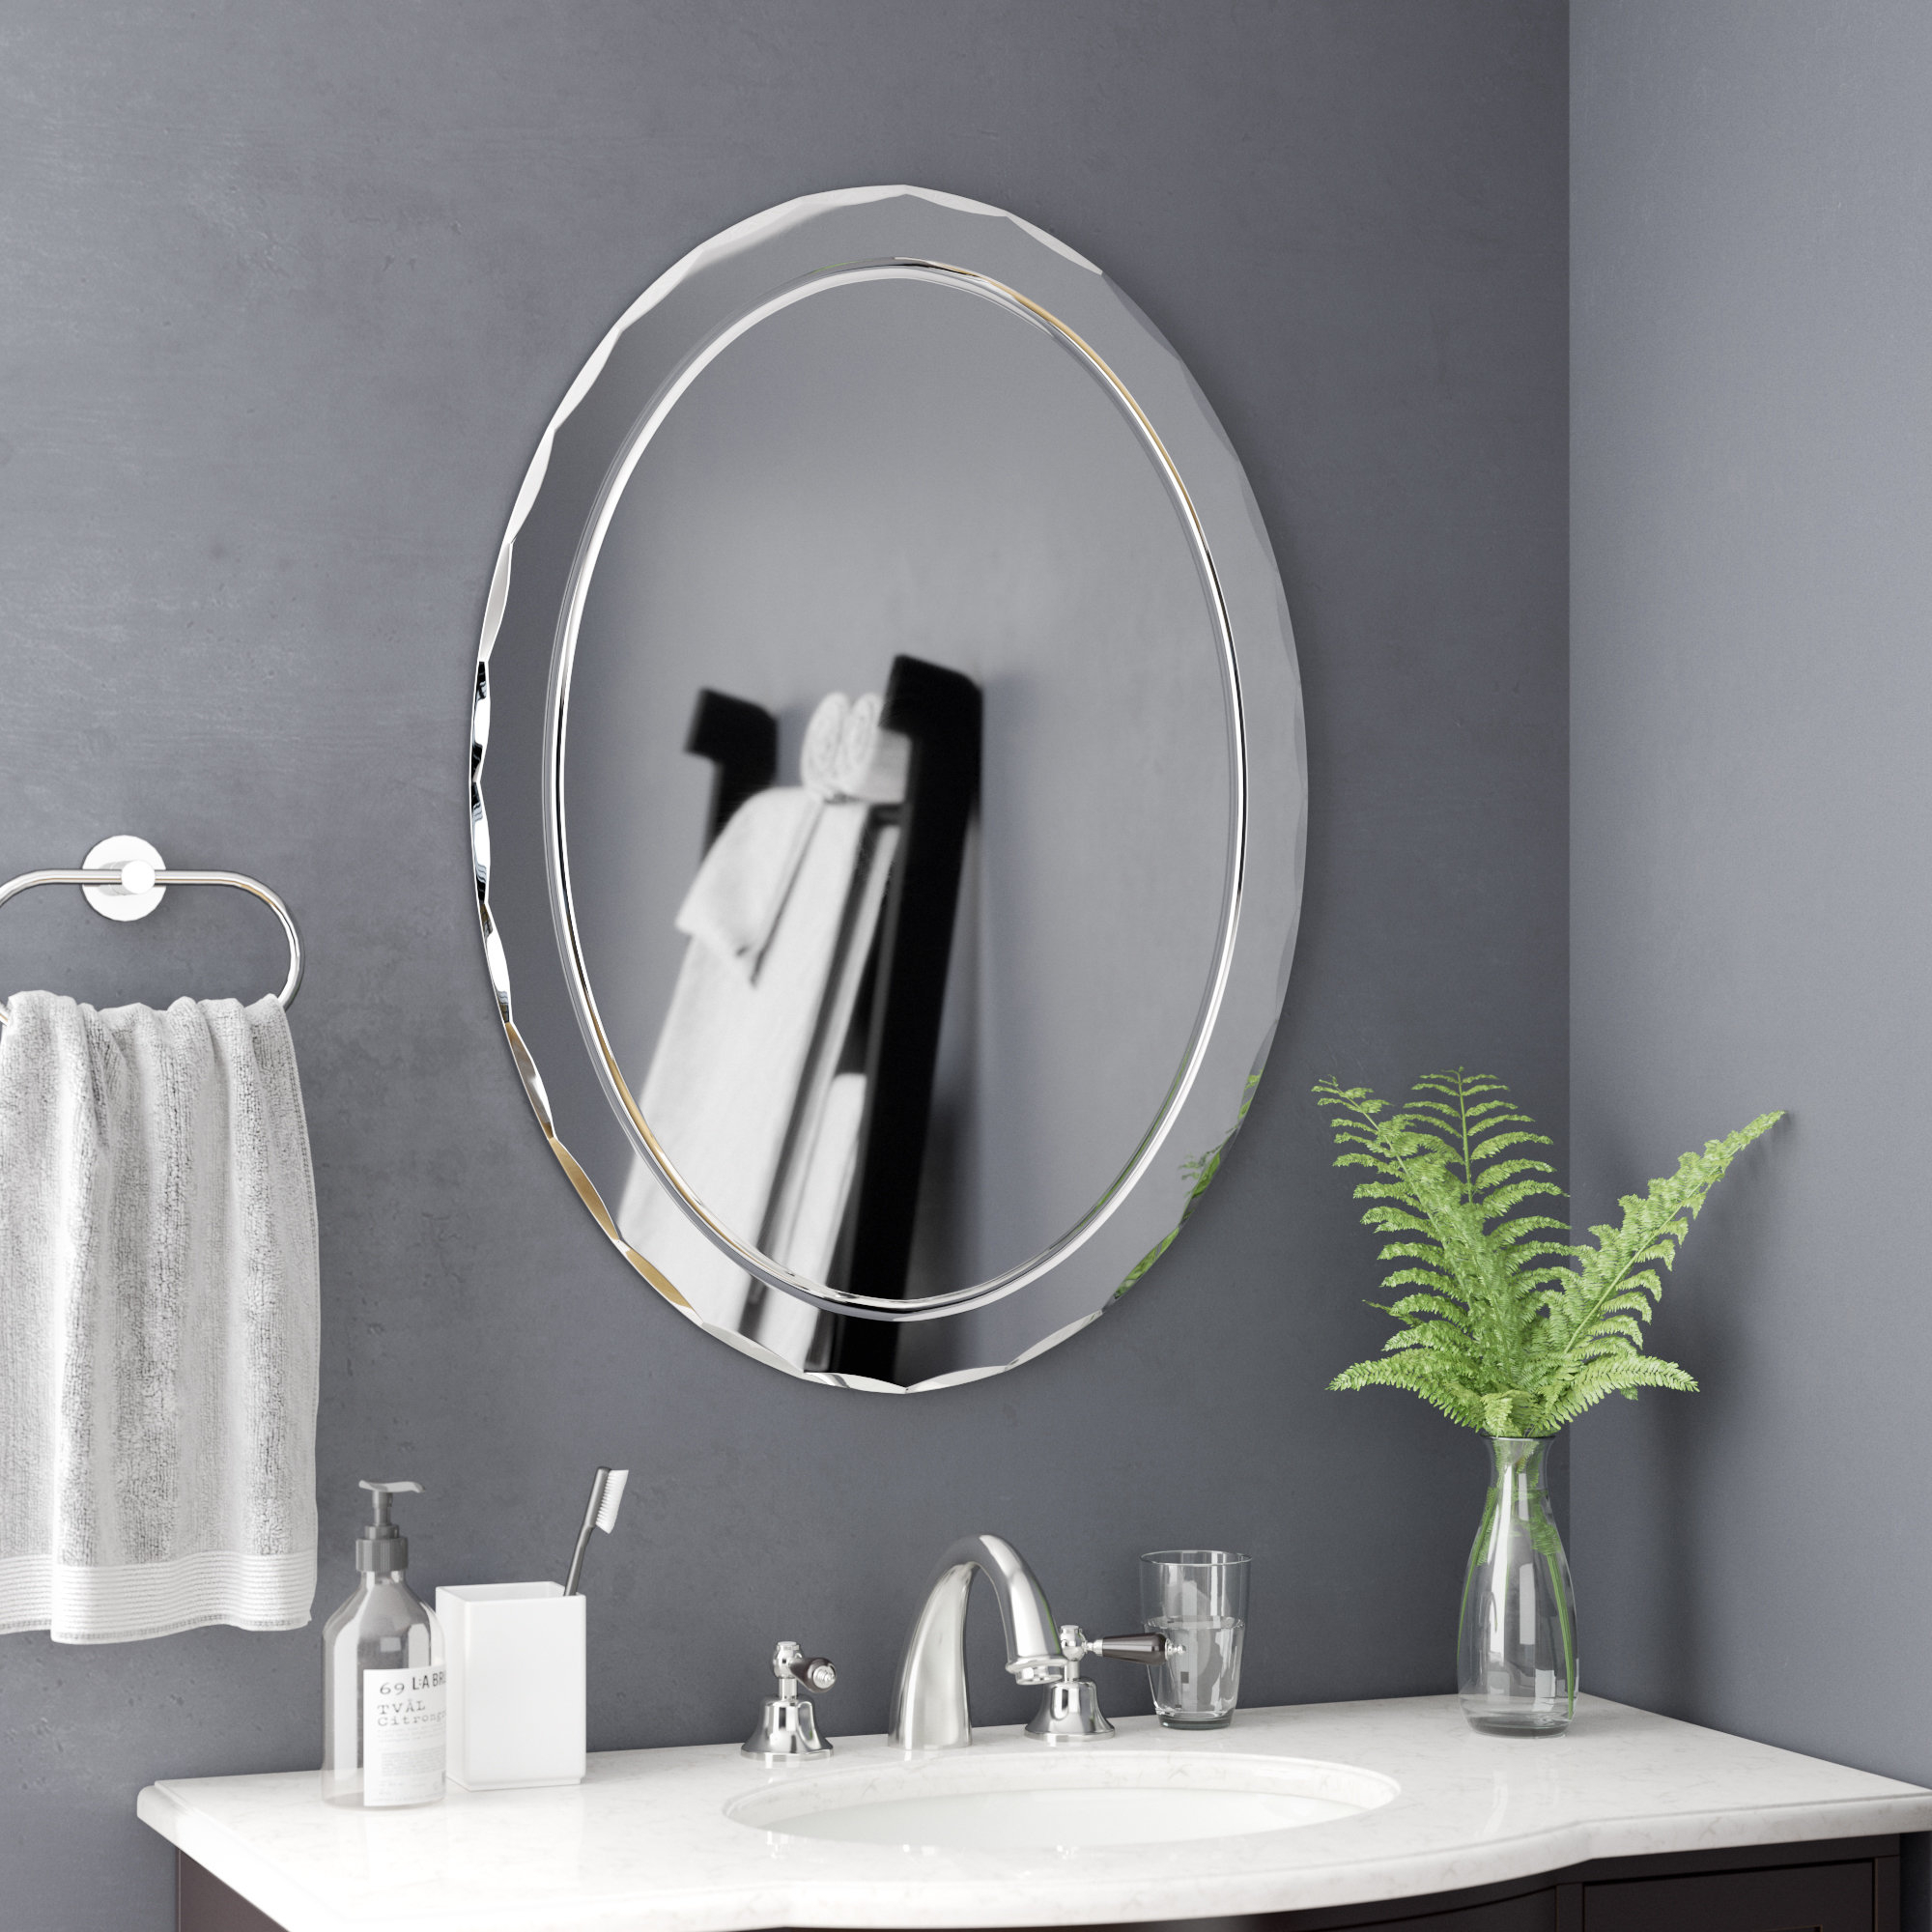 Etched Frameless Wall Mirror | Wayfair Intended For Wallingford Large Frameless Wall Mirrors (View 8 of 30)